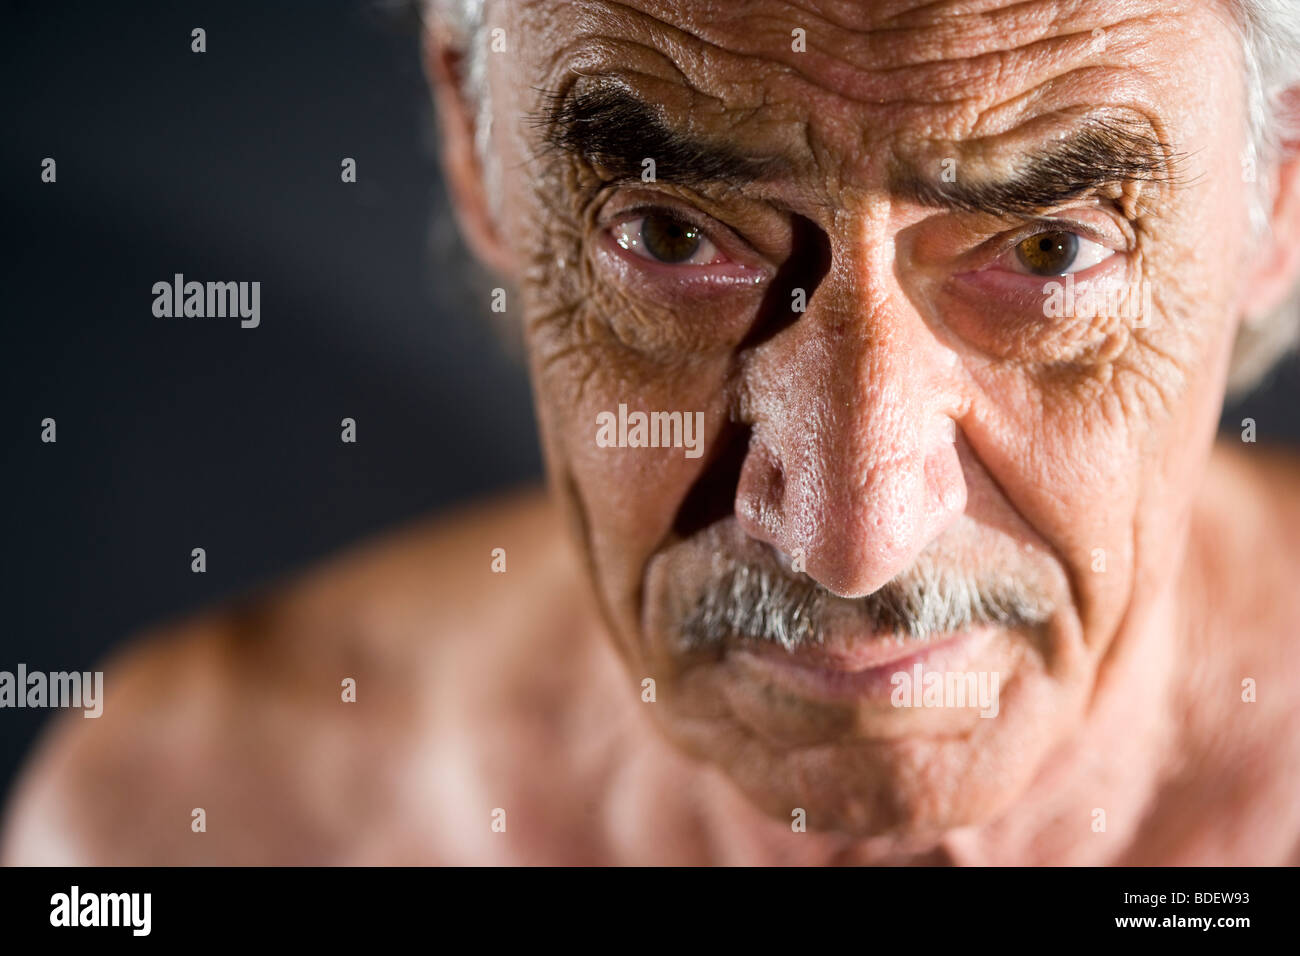 Face of old man - Stock Image